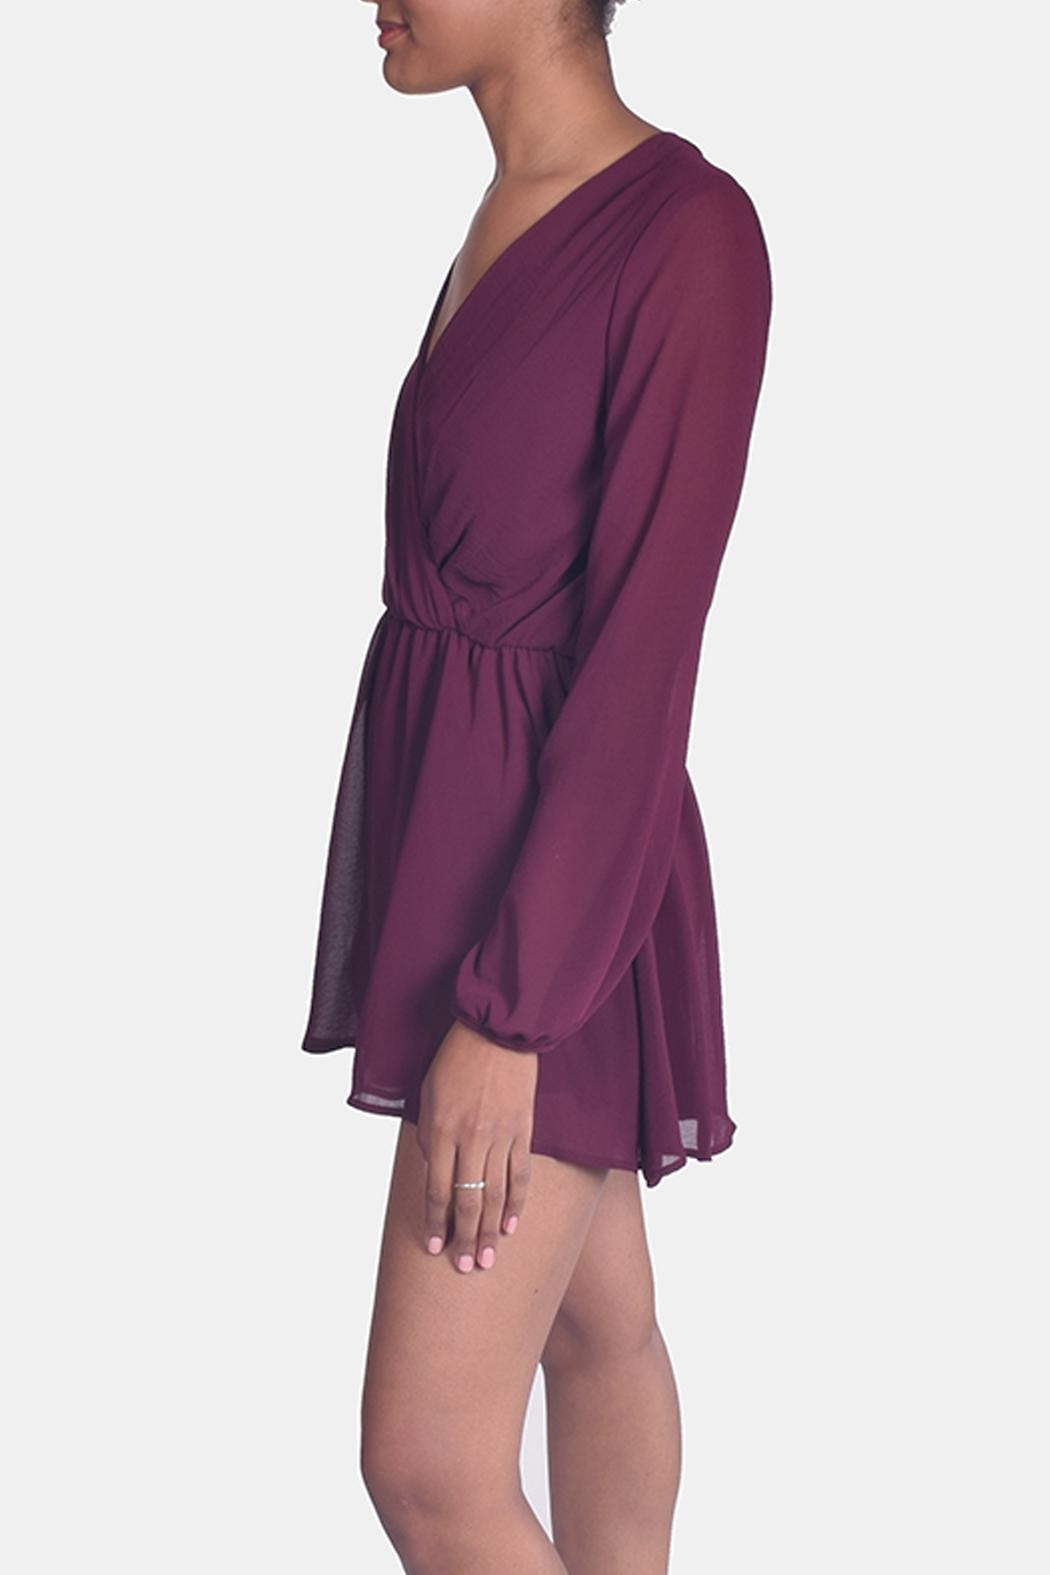 Final Touch Wine Chiffon Romper - Side Cropped Image